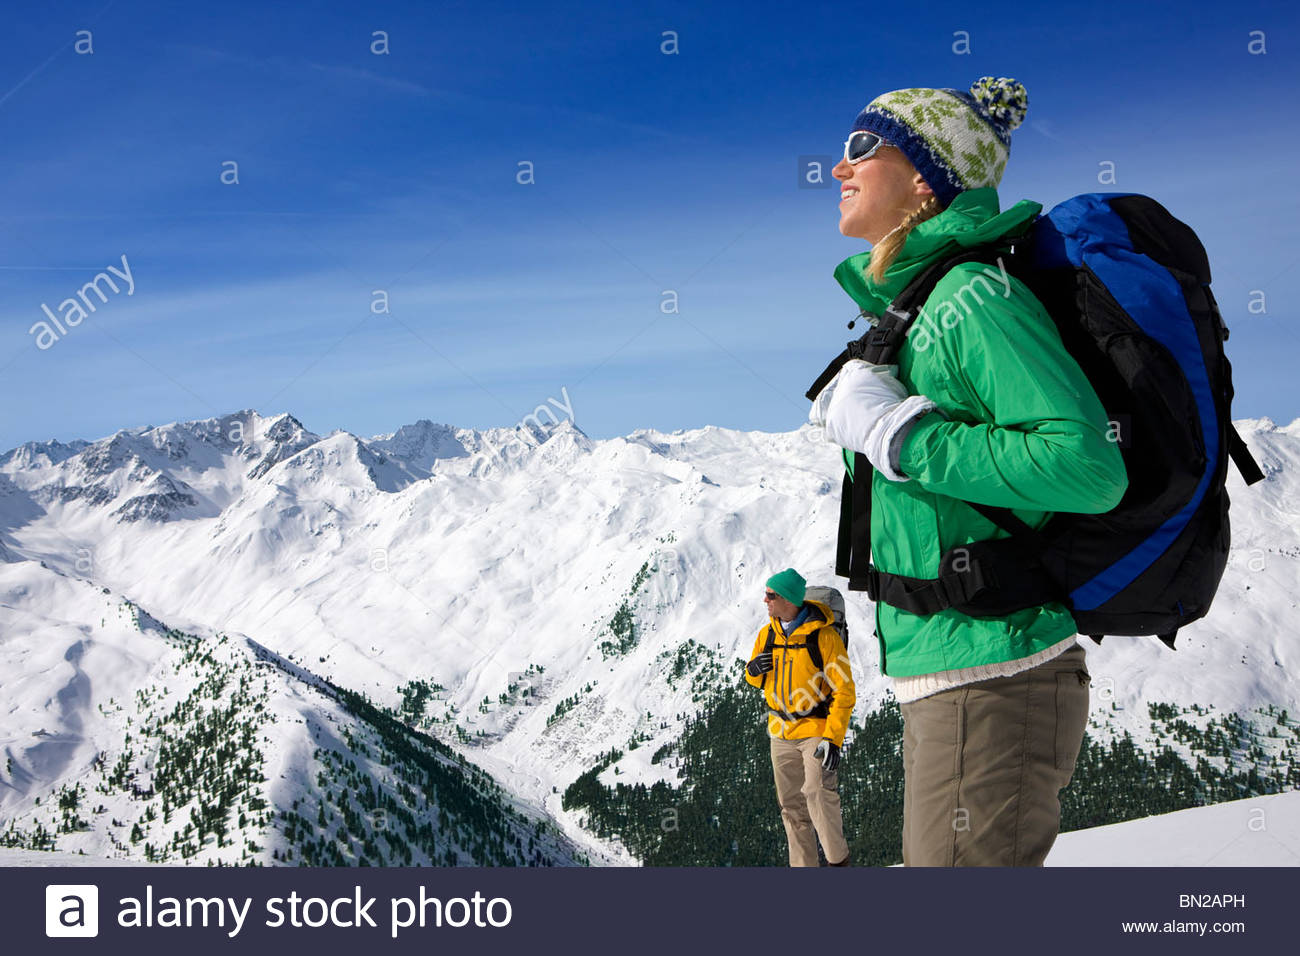 Couple backpacking on snowy mountain - Stock Image